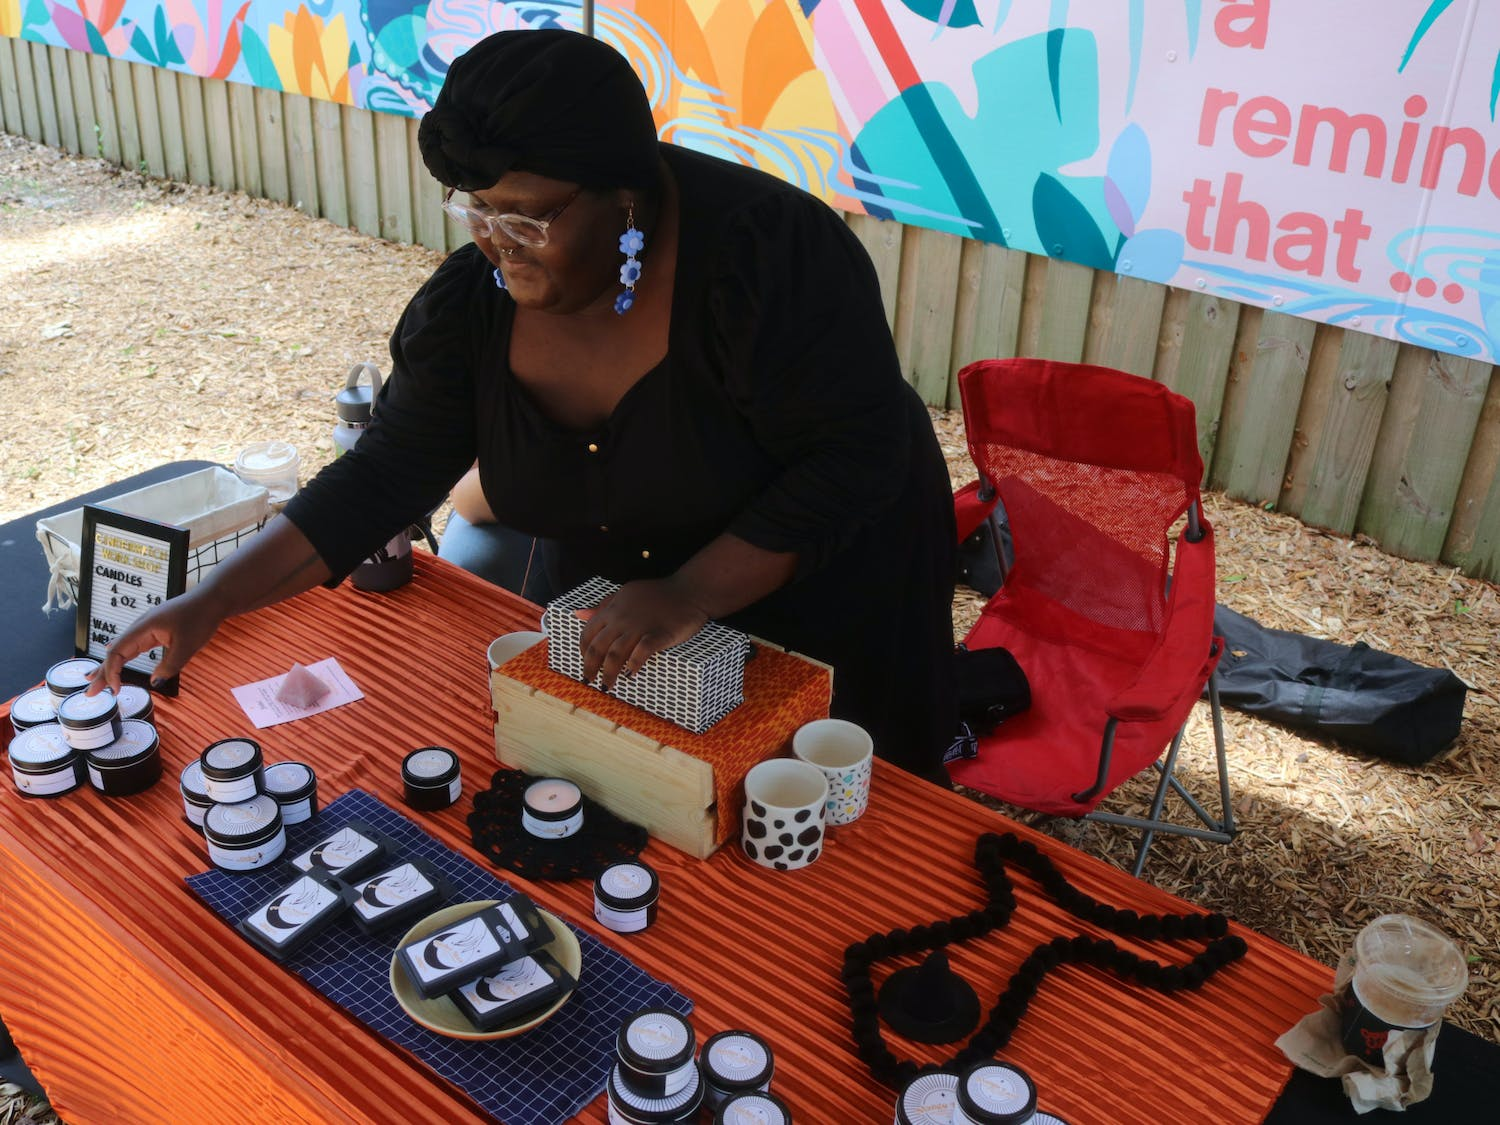 Salem Commander brought her homemade candles to 4th Ave Foodpark's Juneteenth celebration on June 19, 2021. Commander makes the candles herself and sells them at local markets.